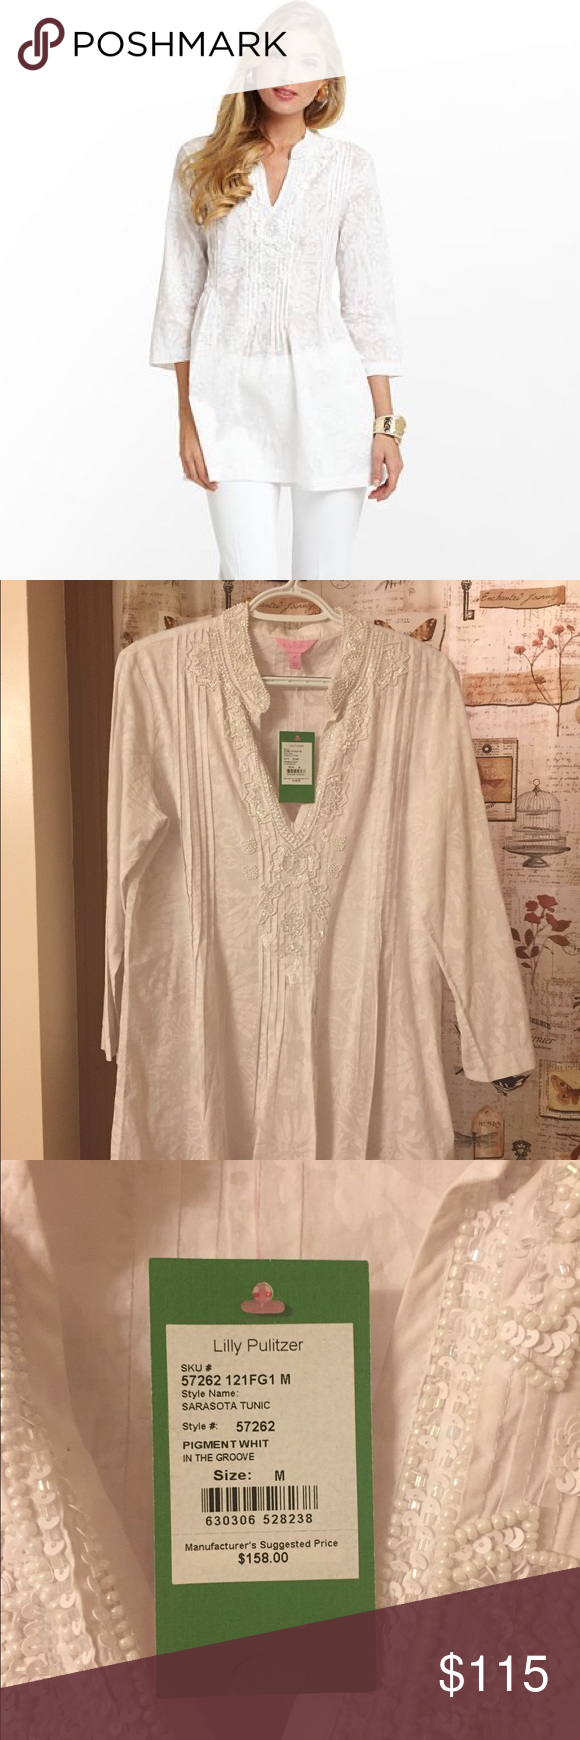 Lilly Pulitzer white sarasota tunic Brand new with tags, size medium. Very pretty and gorgeous beading detail. Pet free and smoke free home. Lilly Pulitzer Tops Tunics